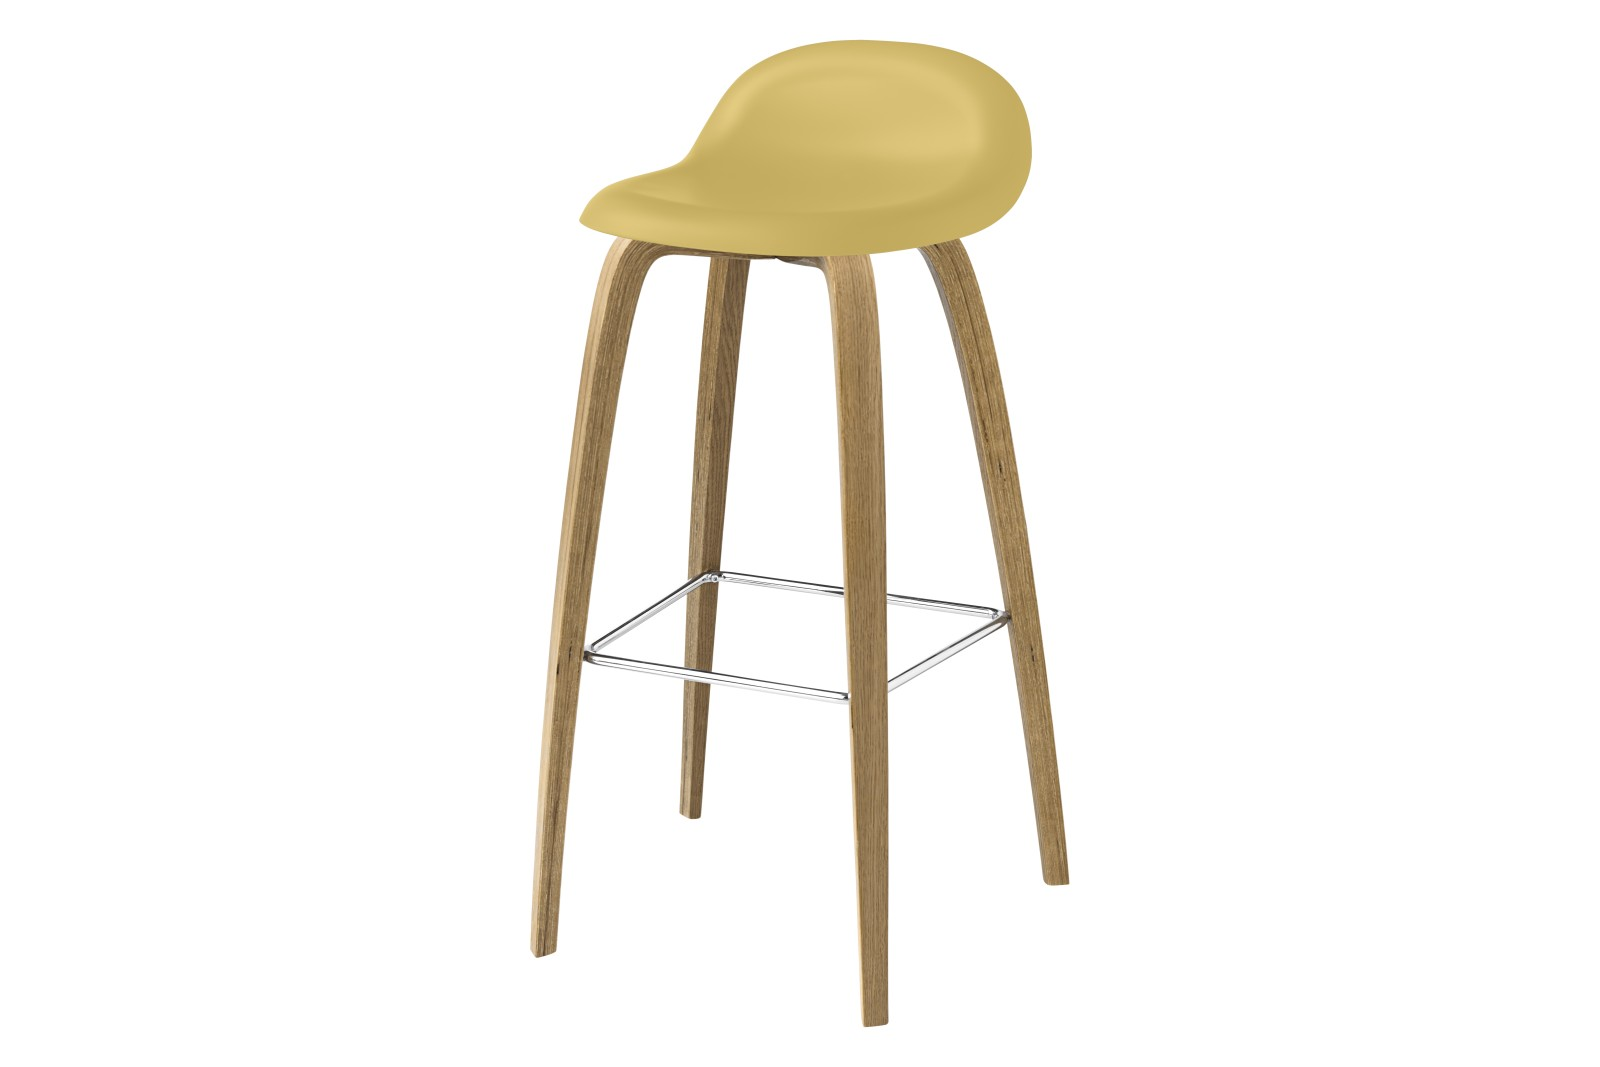 3D Bar Stool - Un-Upholstered, Wood Base Gubi HiRek Venetian Gold, Gubi Wood Oak, Gubi Metal Chrome,